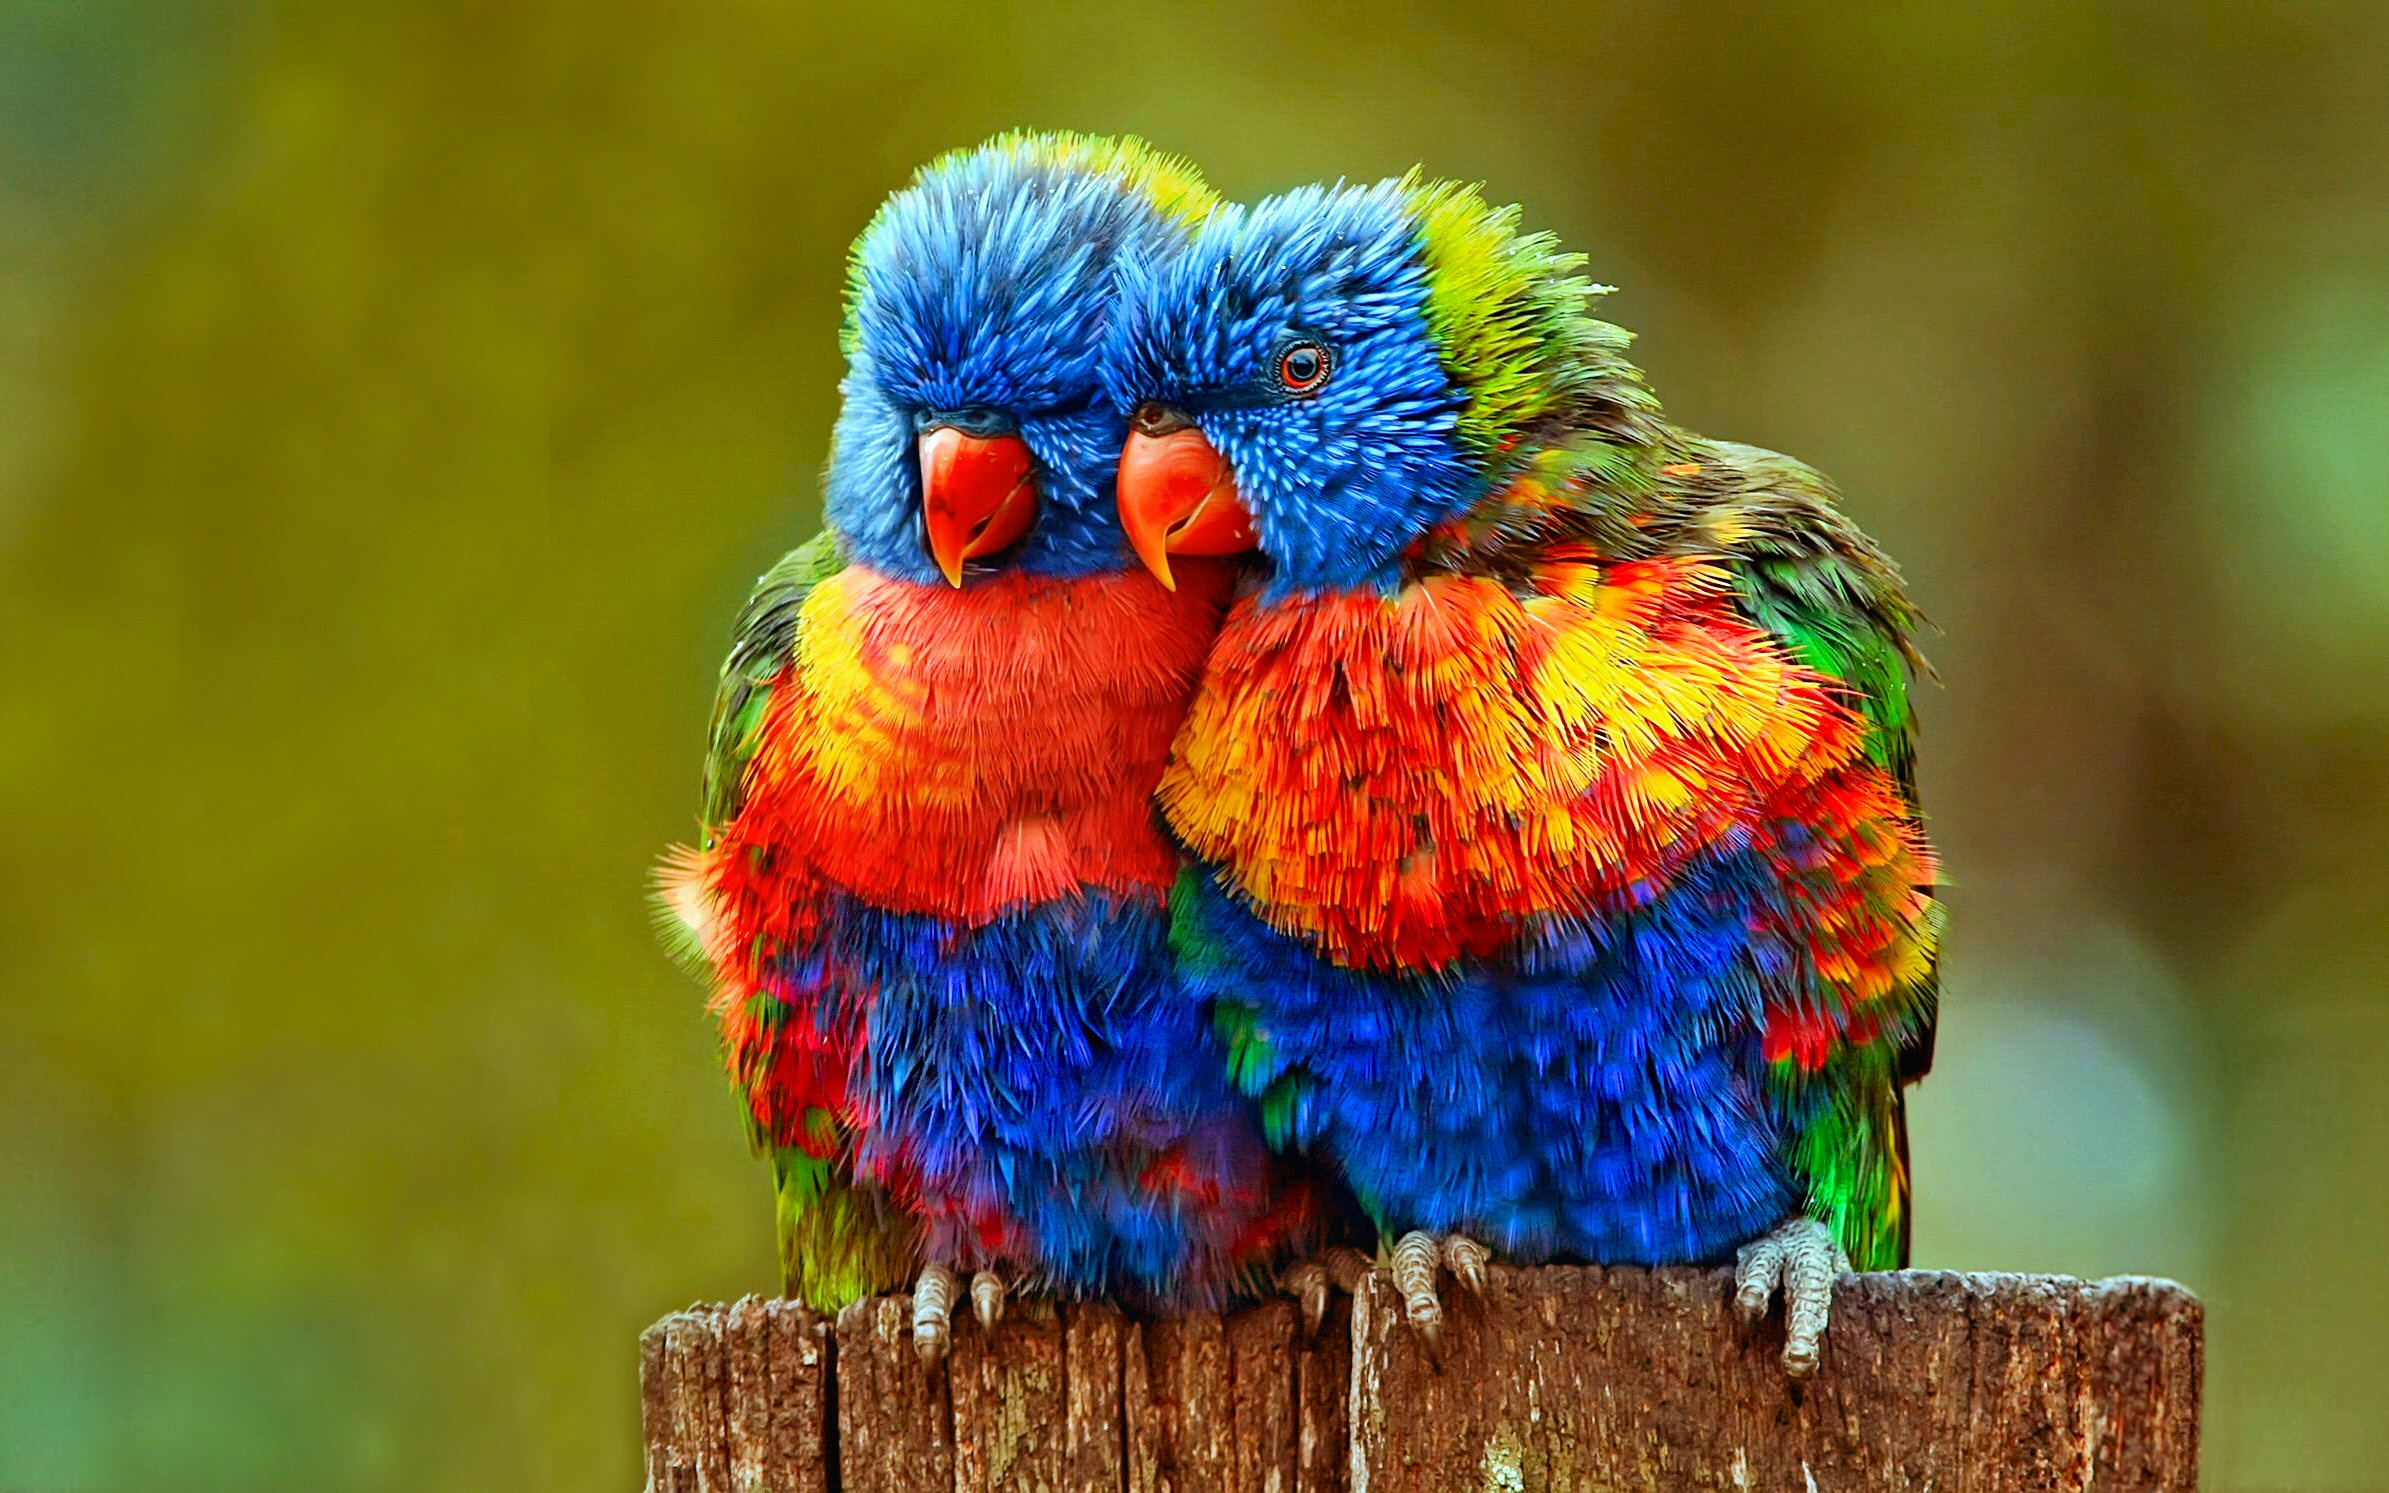 Parrot HD Wallpapers Backgrounds Wallpaper